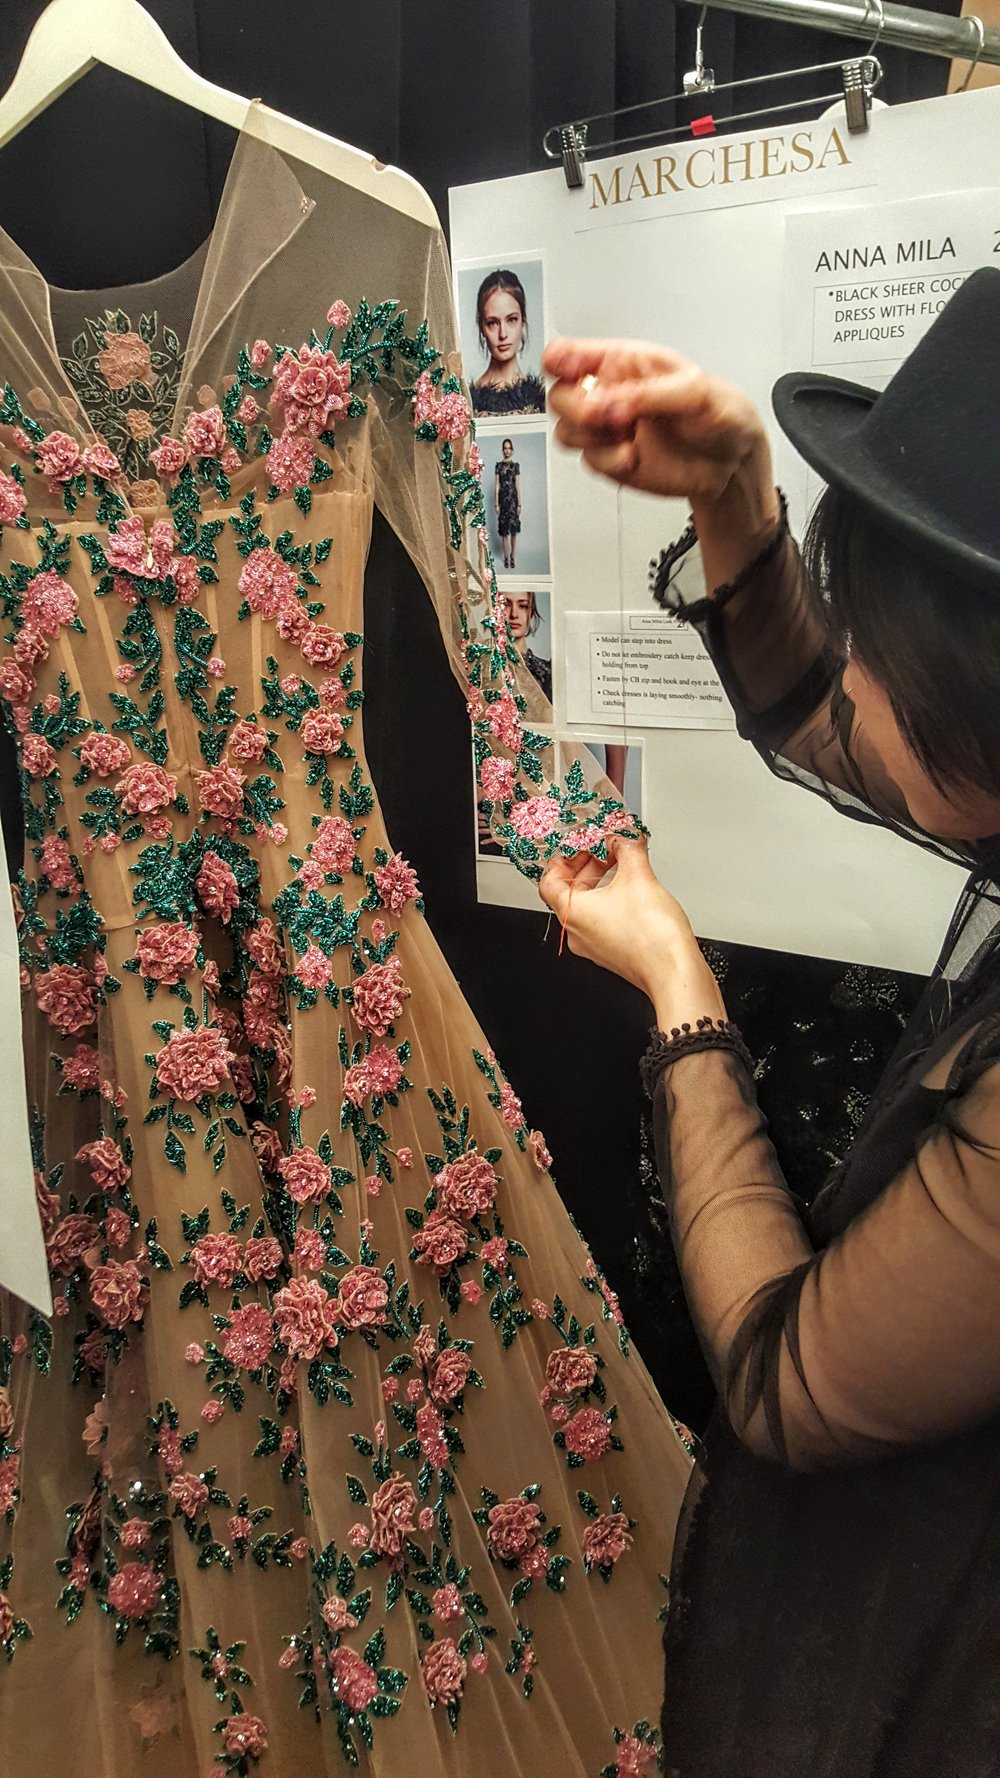 Minutes before showtime, a seamstress tirelessly works on finishing touches on one of the gowns - so stunning, I thought I was going to hyperventilate with glee.